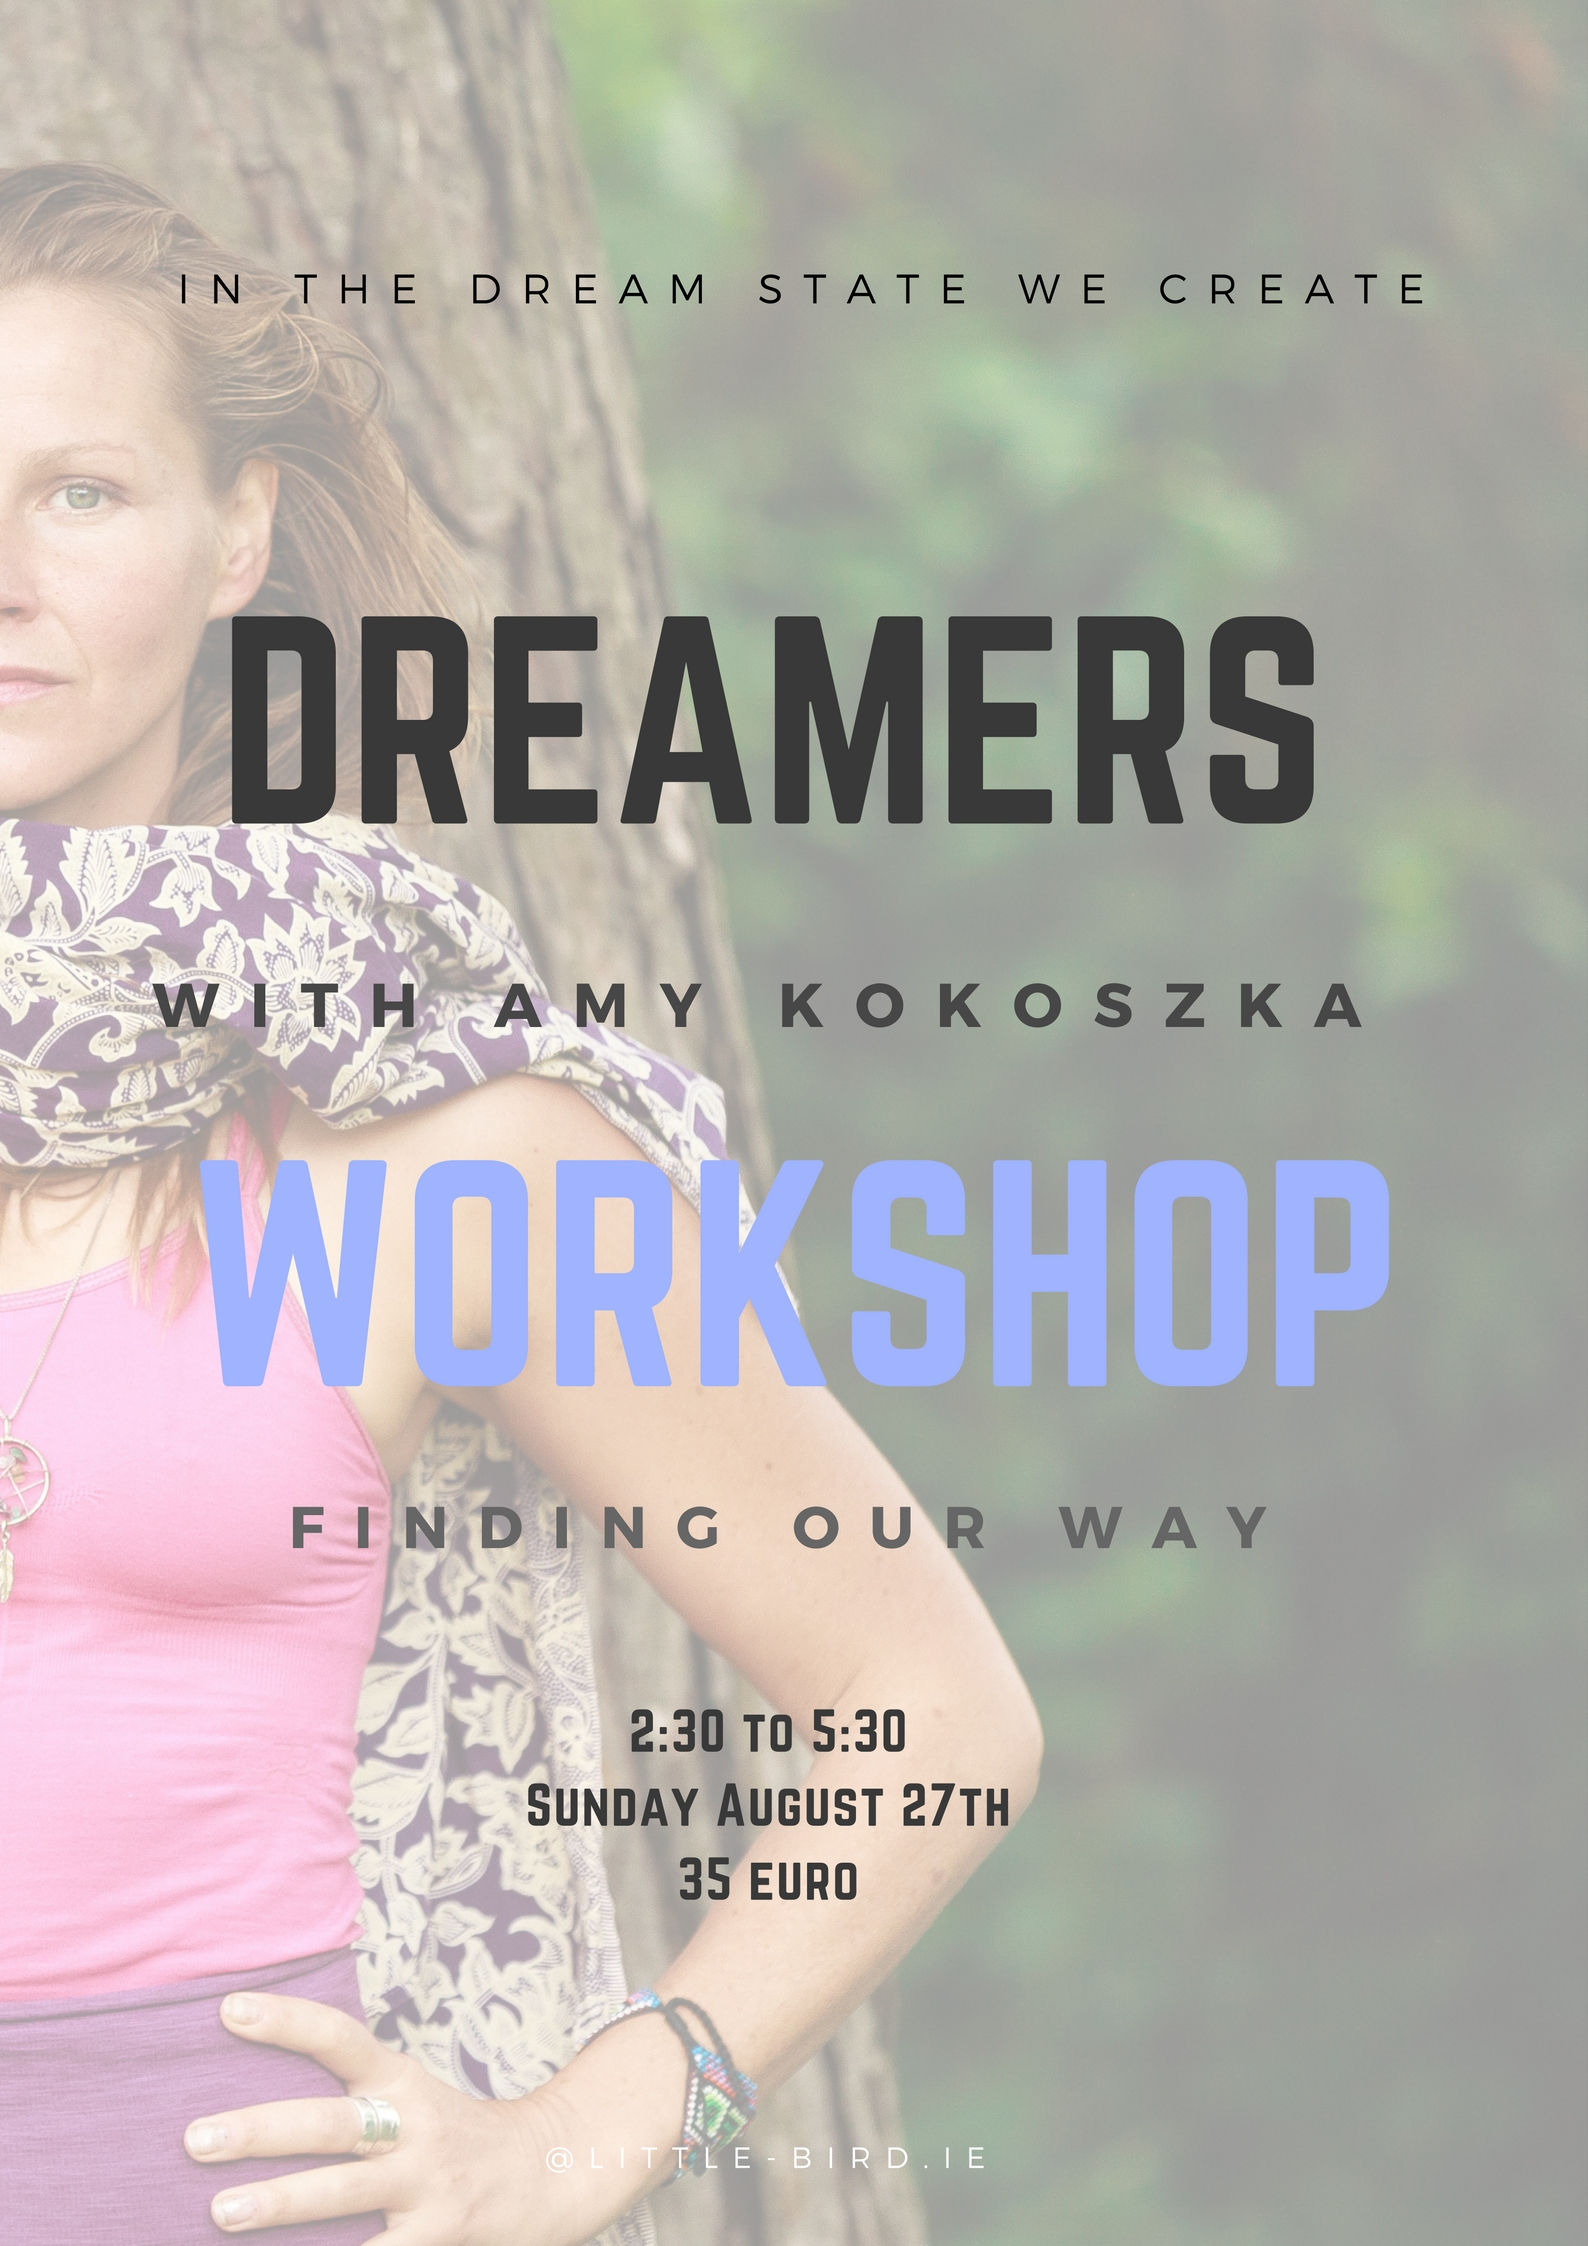 Dreamers workshop